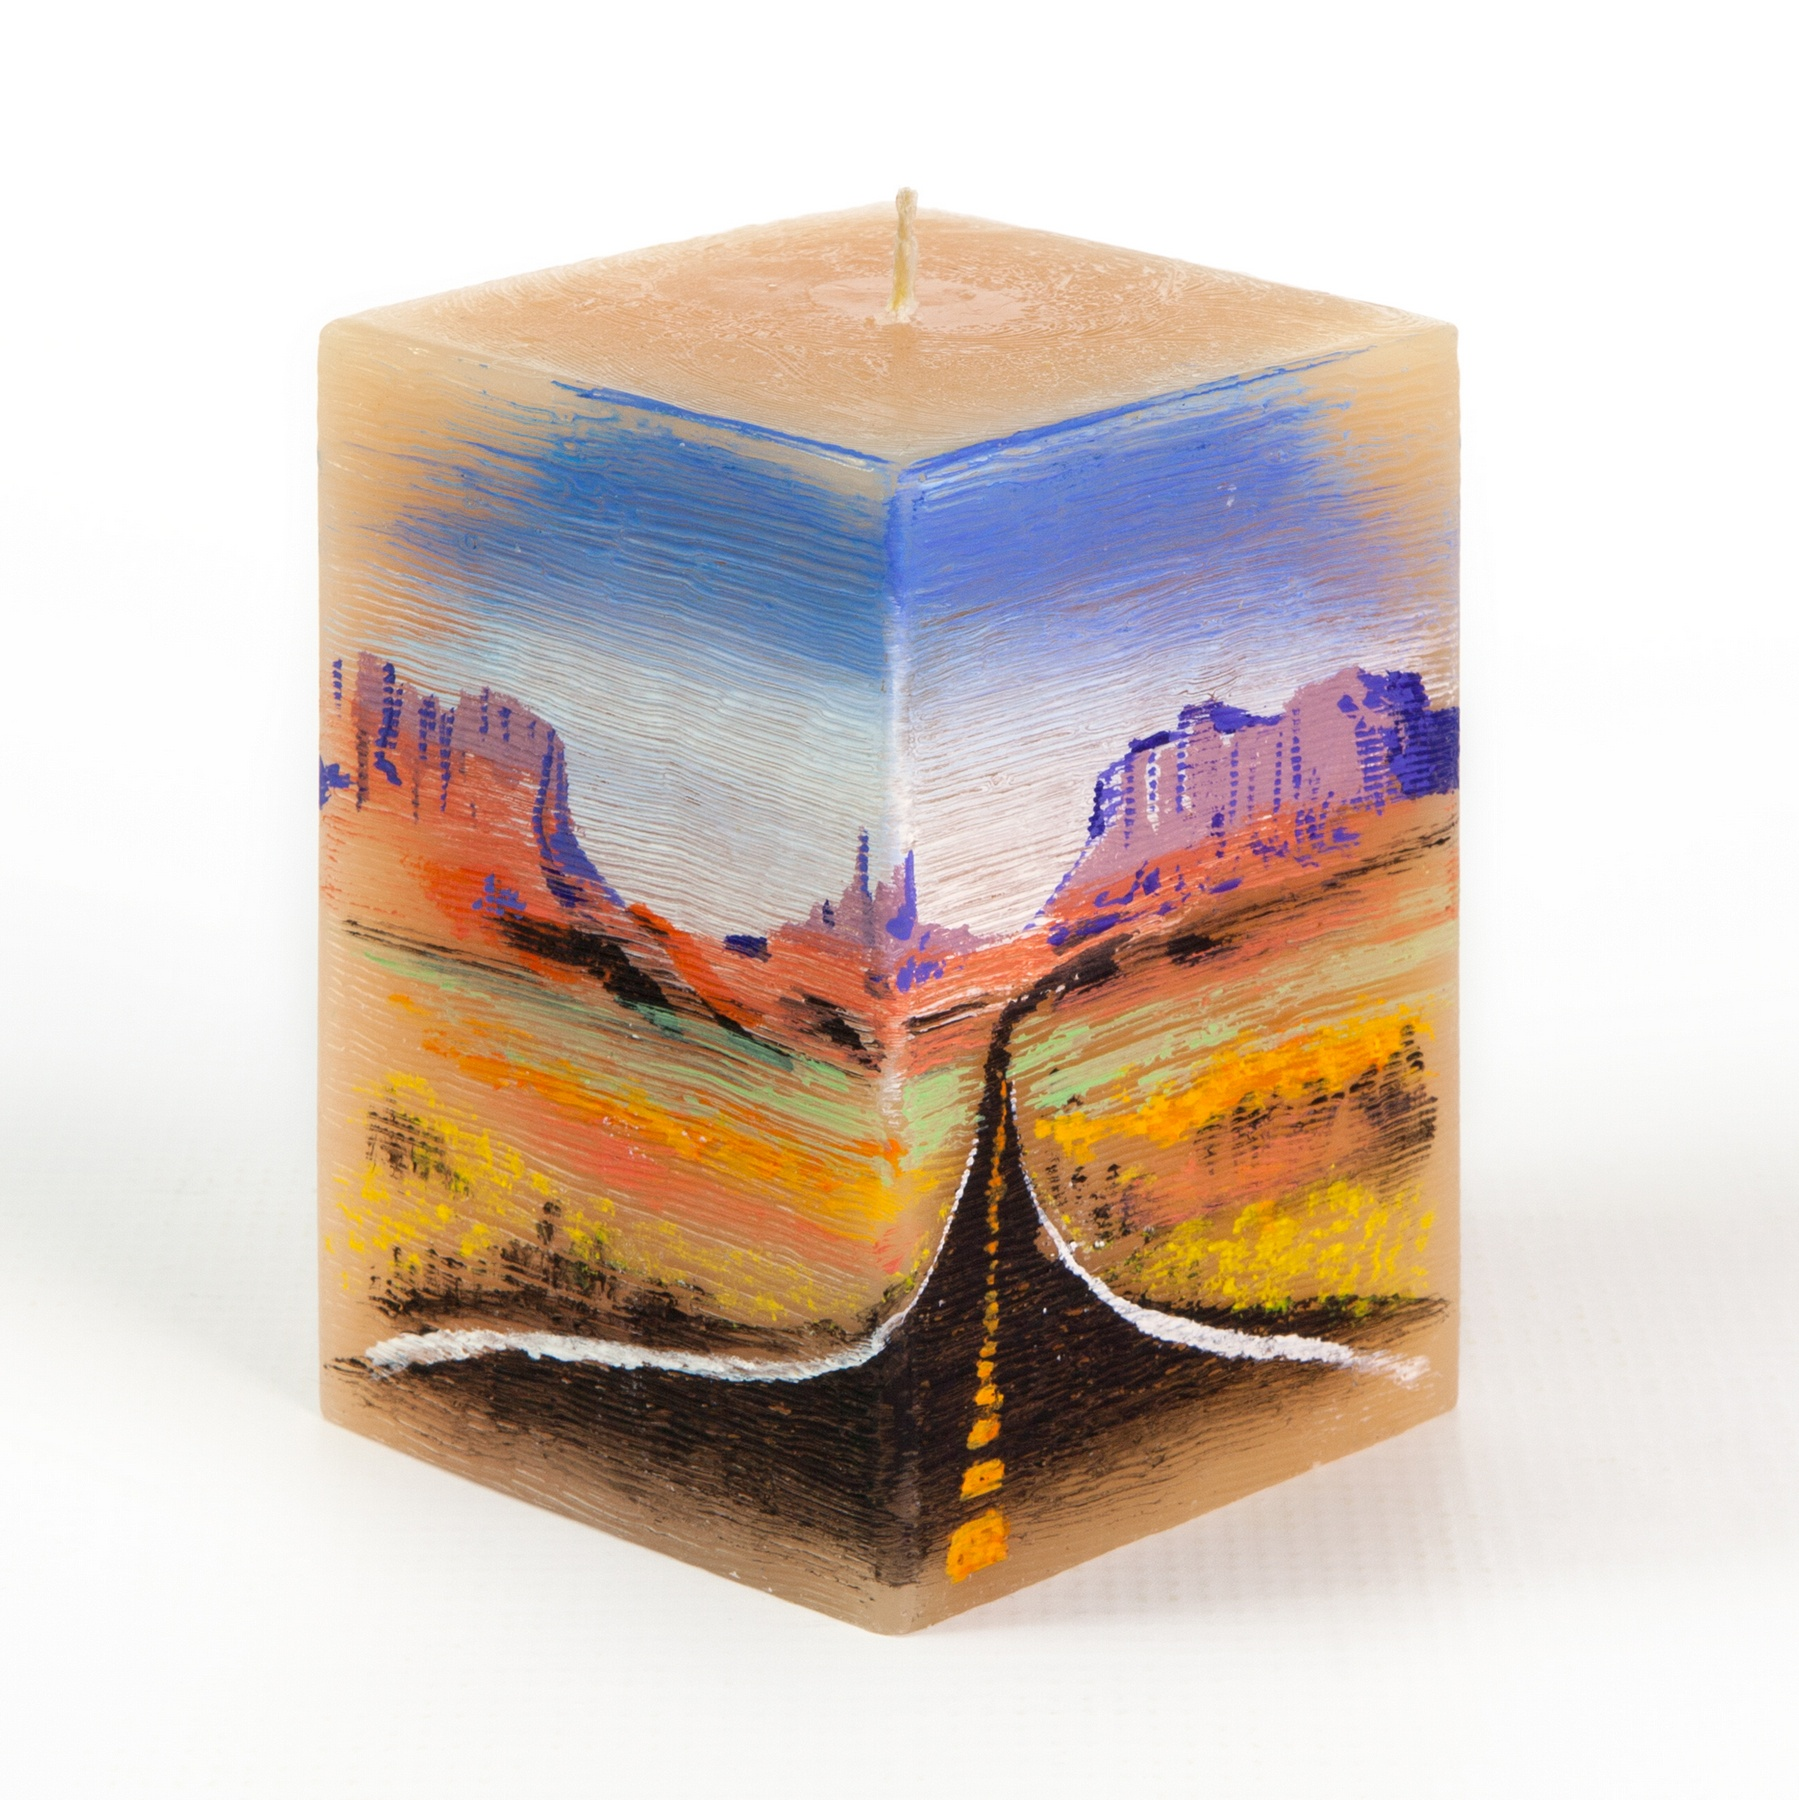 Handmade and Handpainted 'Arizona Road' 3